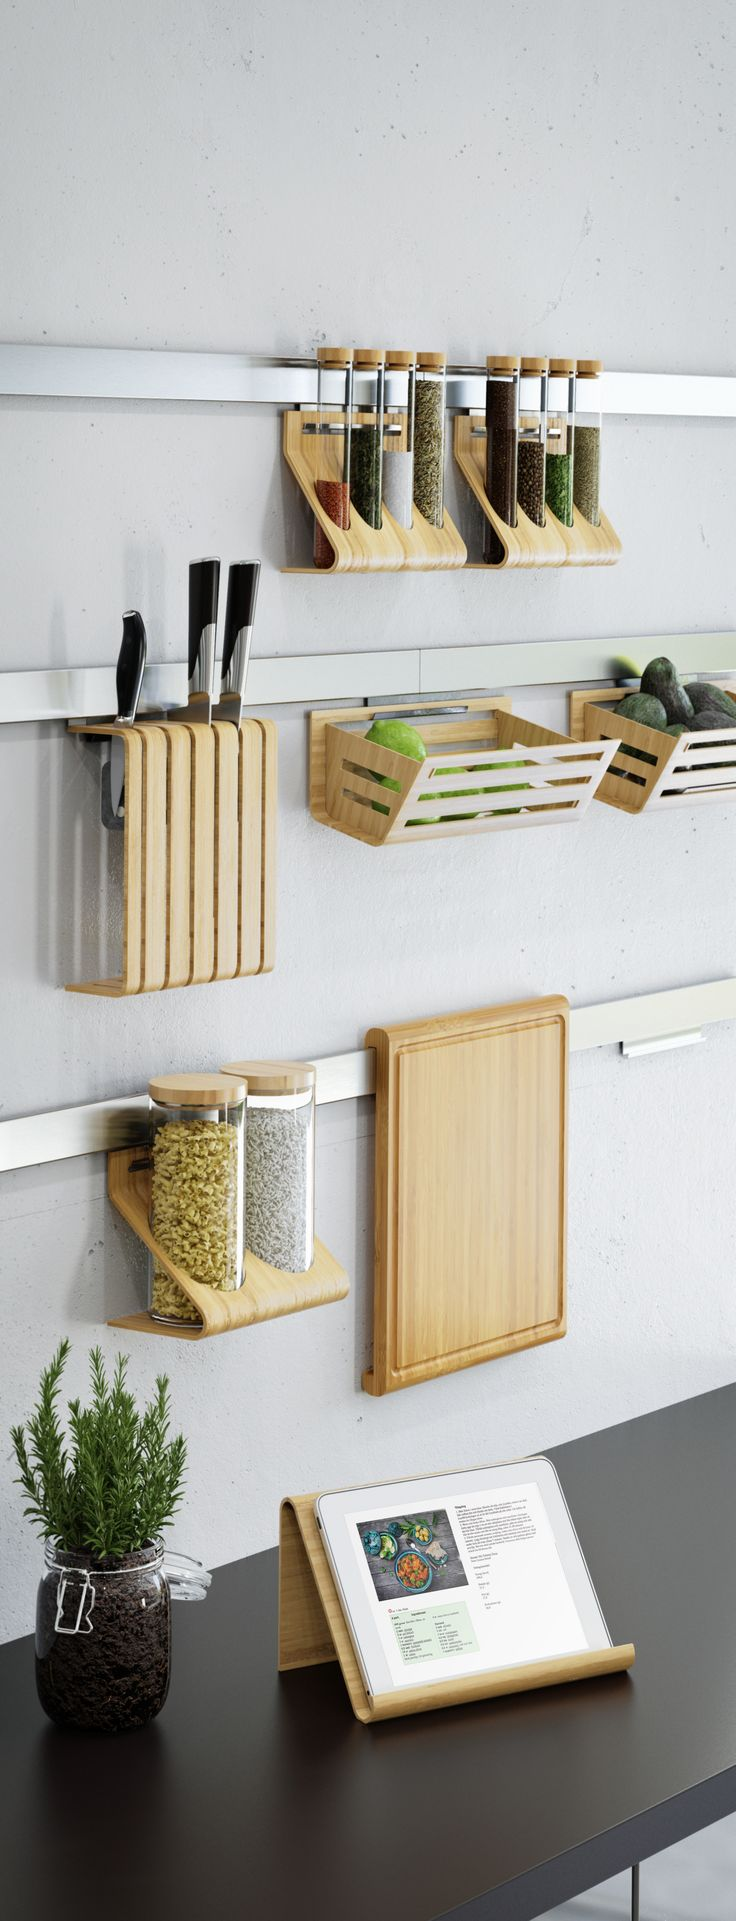 grundtal tips organizer ideas storage ikea kitchen and ingenious organization wall